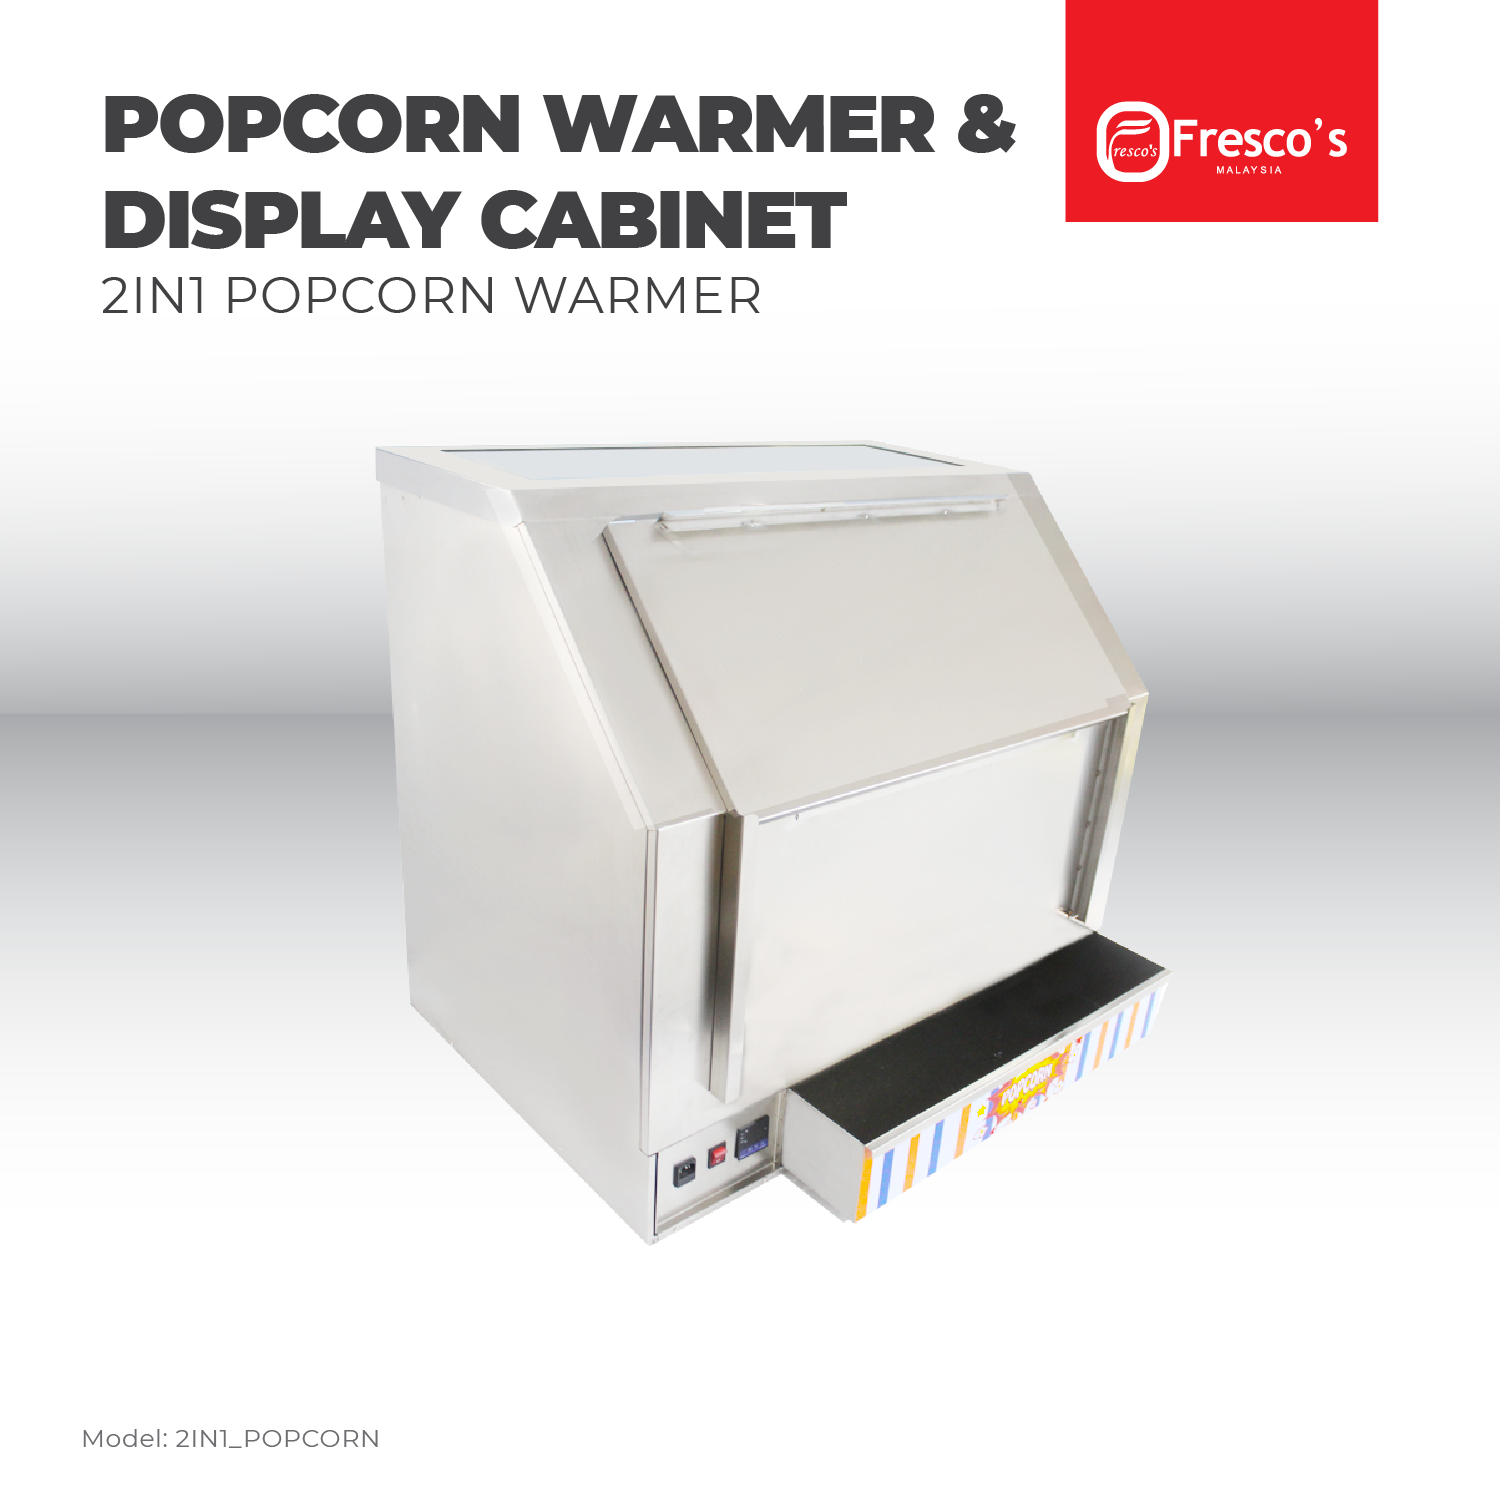 PRE ORDER Fresco Popcorn Warmer & Display Cabinet